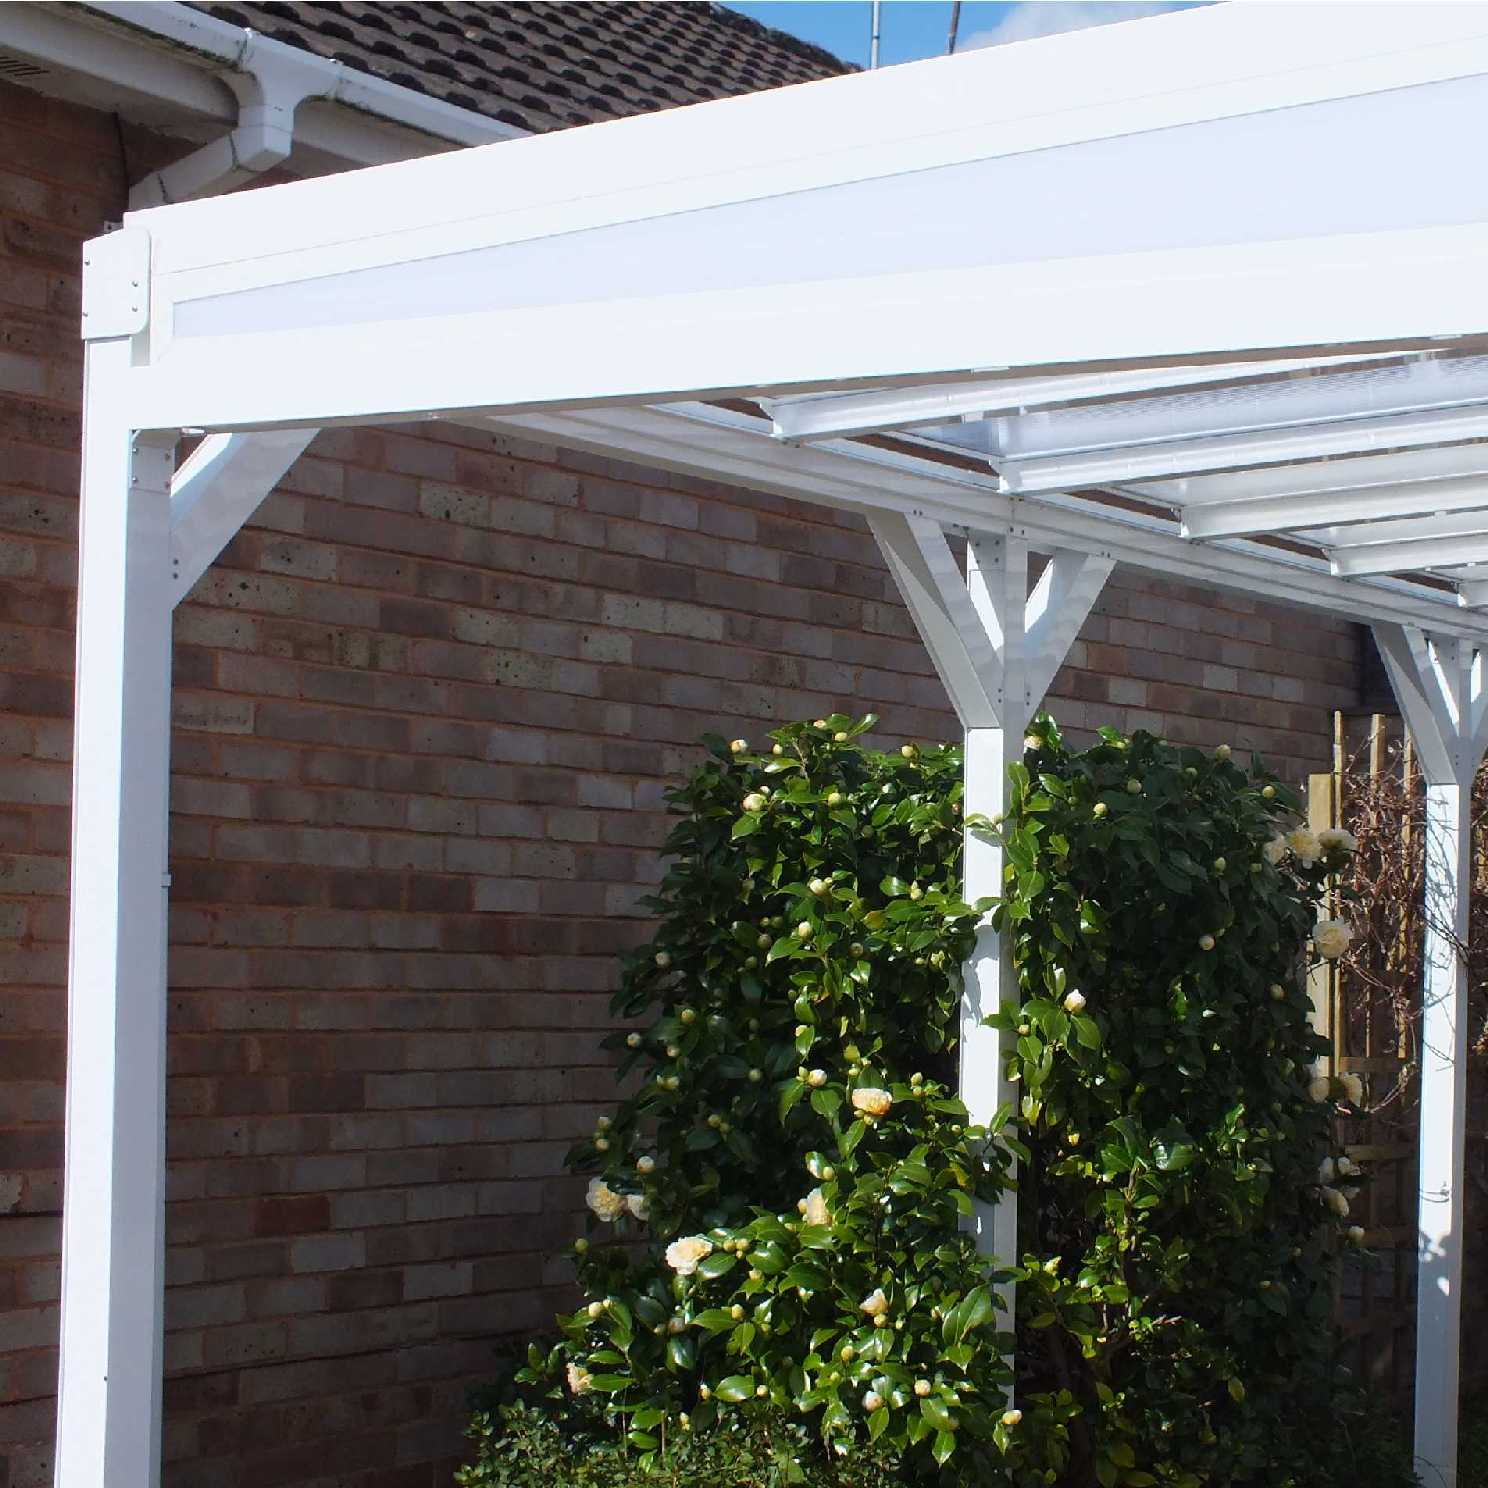 Omega Smart White Lean-To Canopy with 16mm Polycarbonate Glazing - 3.1m (W) x 4.5m (P), (2) Supporting Posts from Omega Build